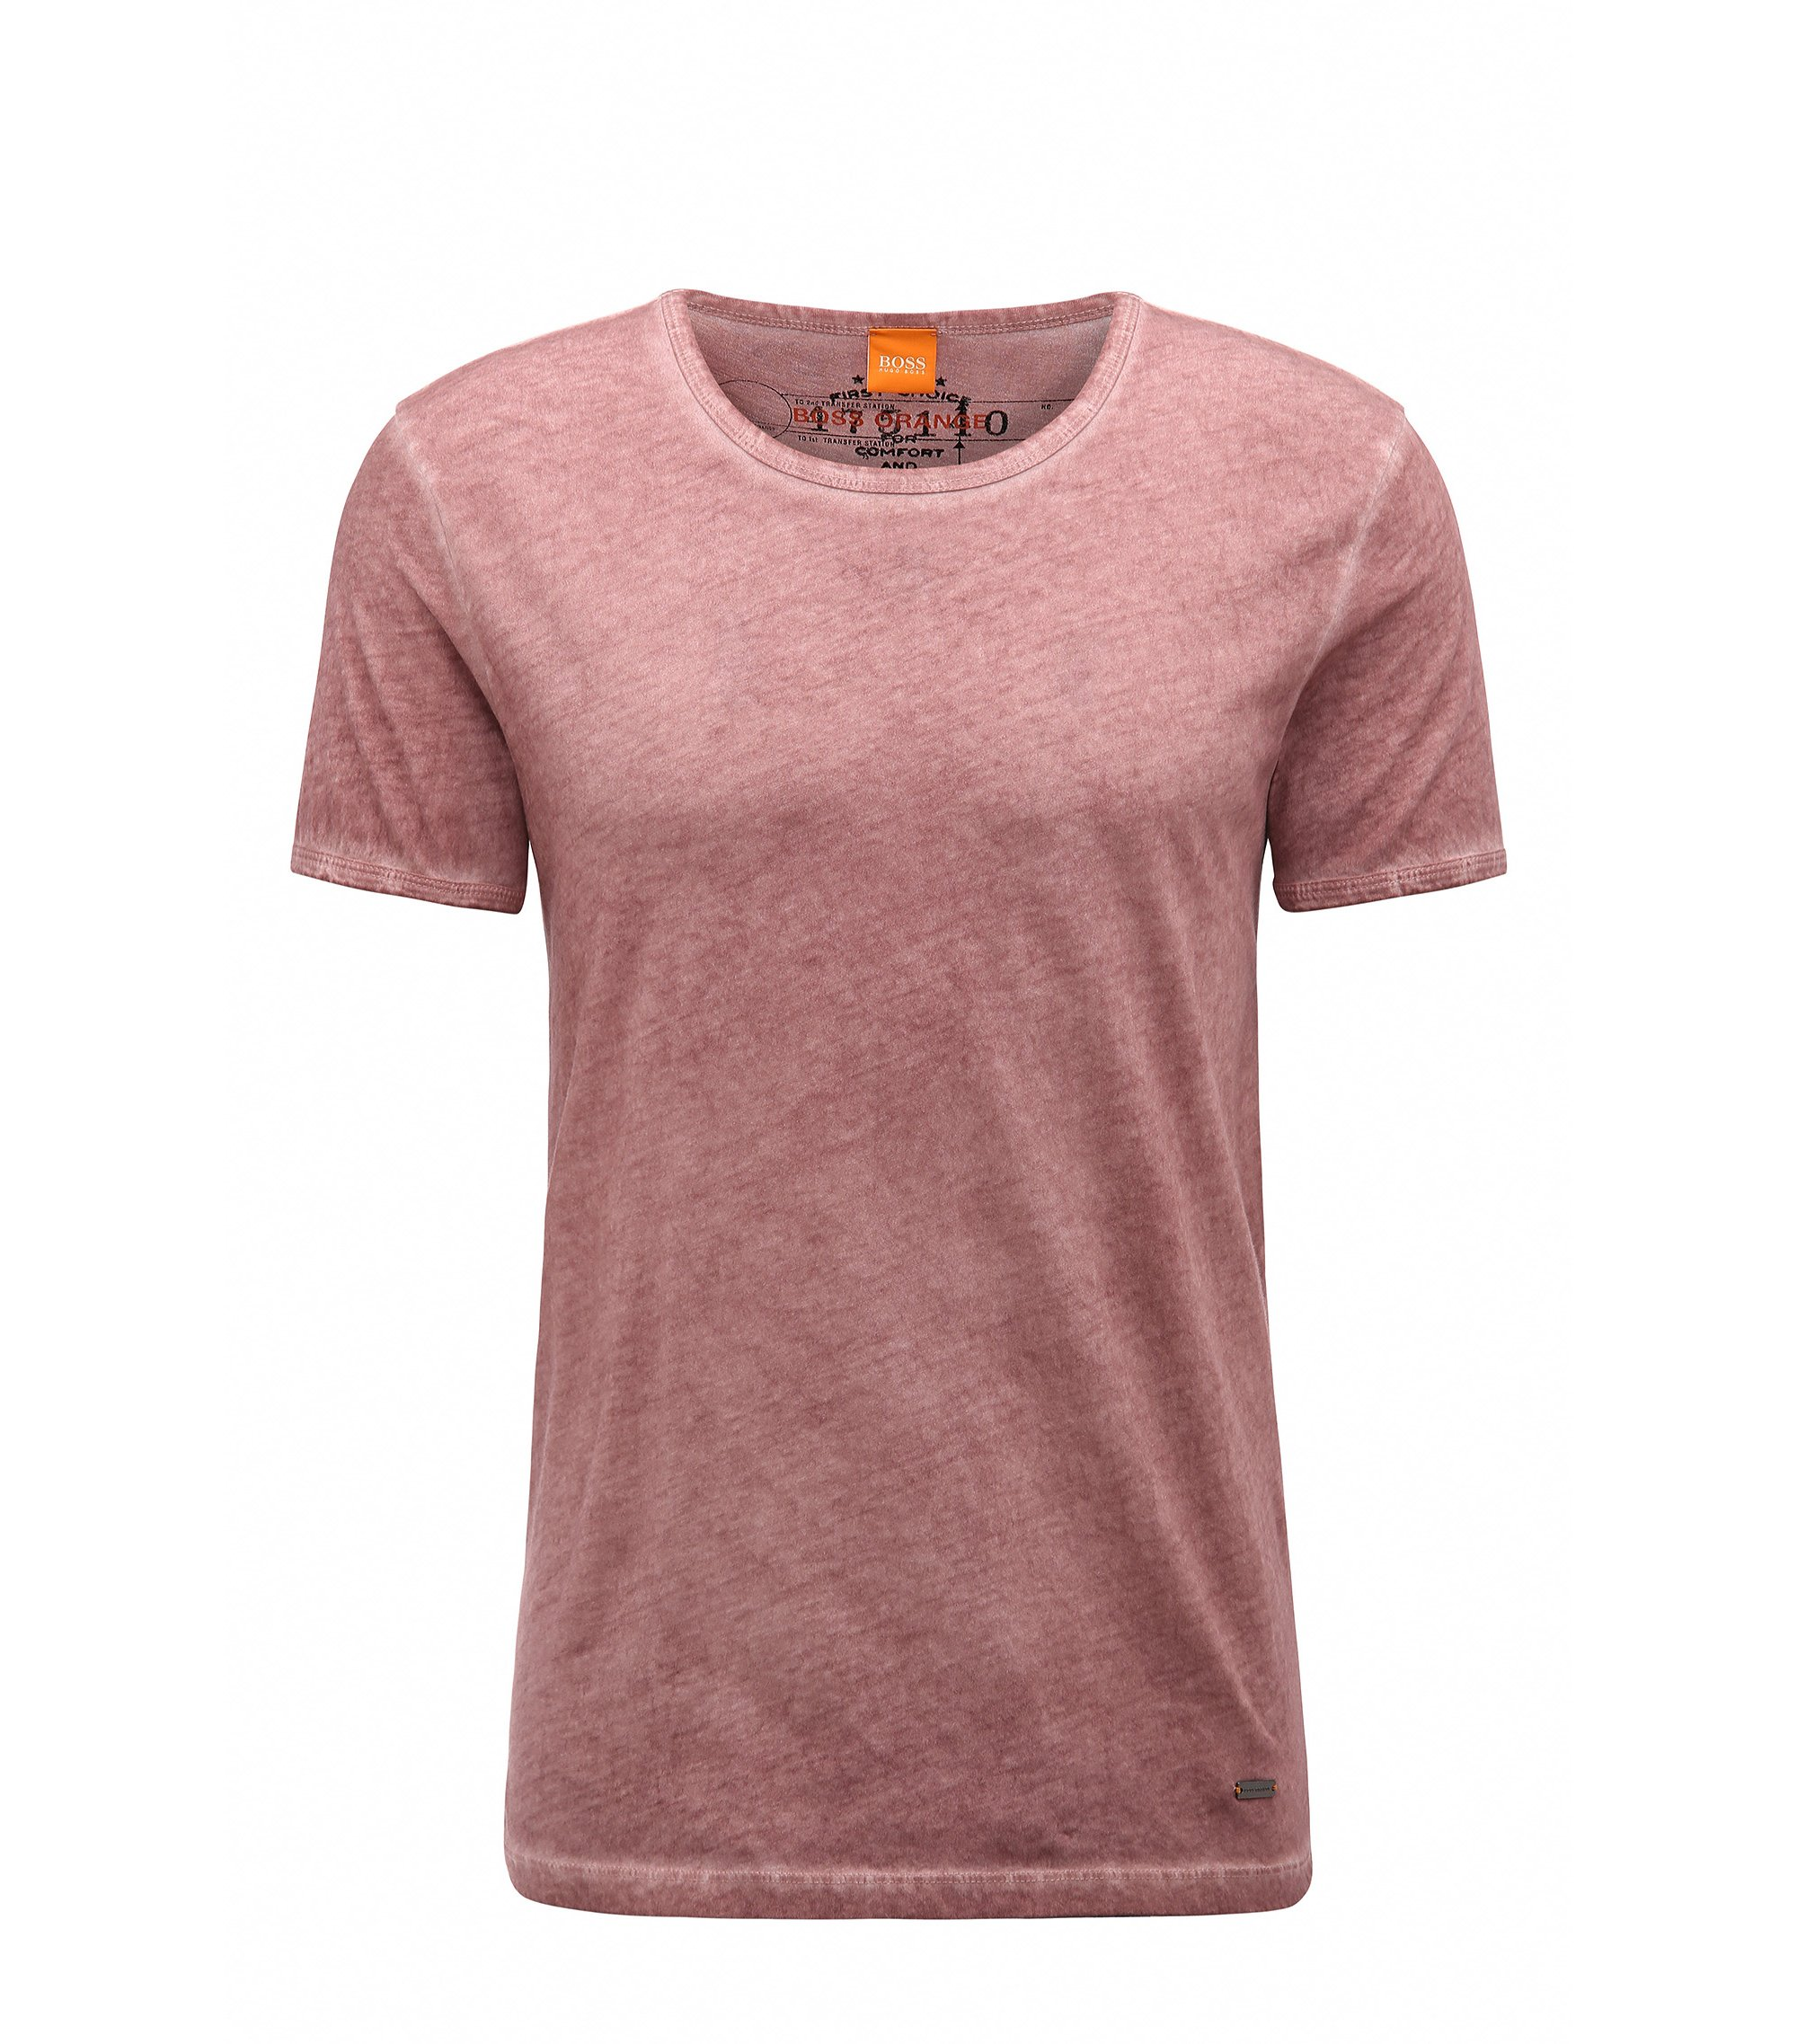 T-shirt regular fit in cotone tinto in capo BOSS Orange, Rosa chiaro